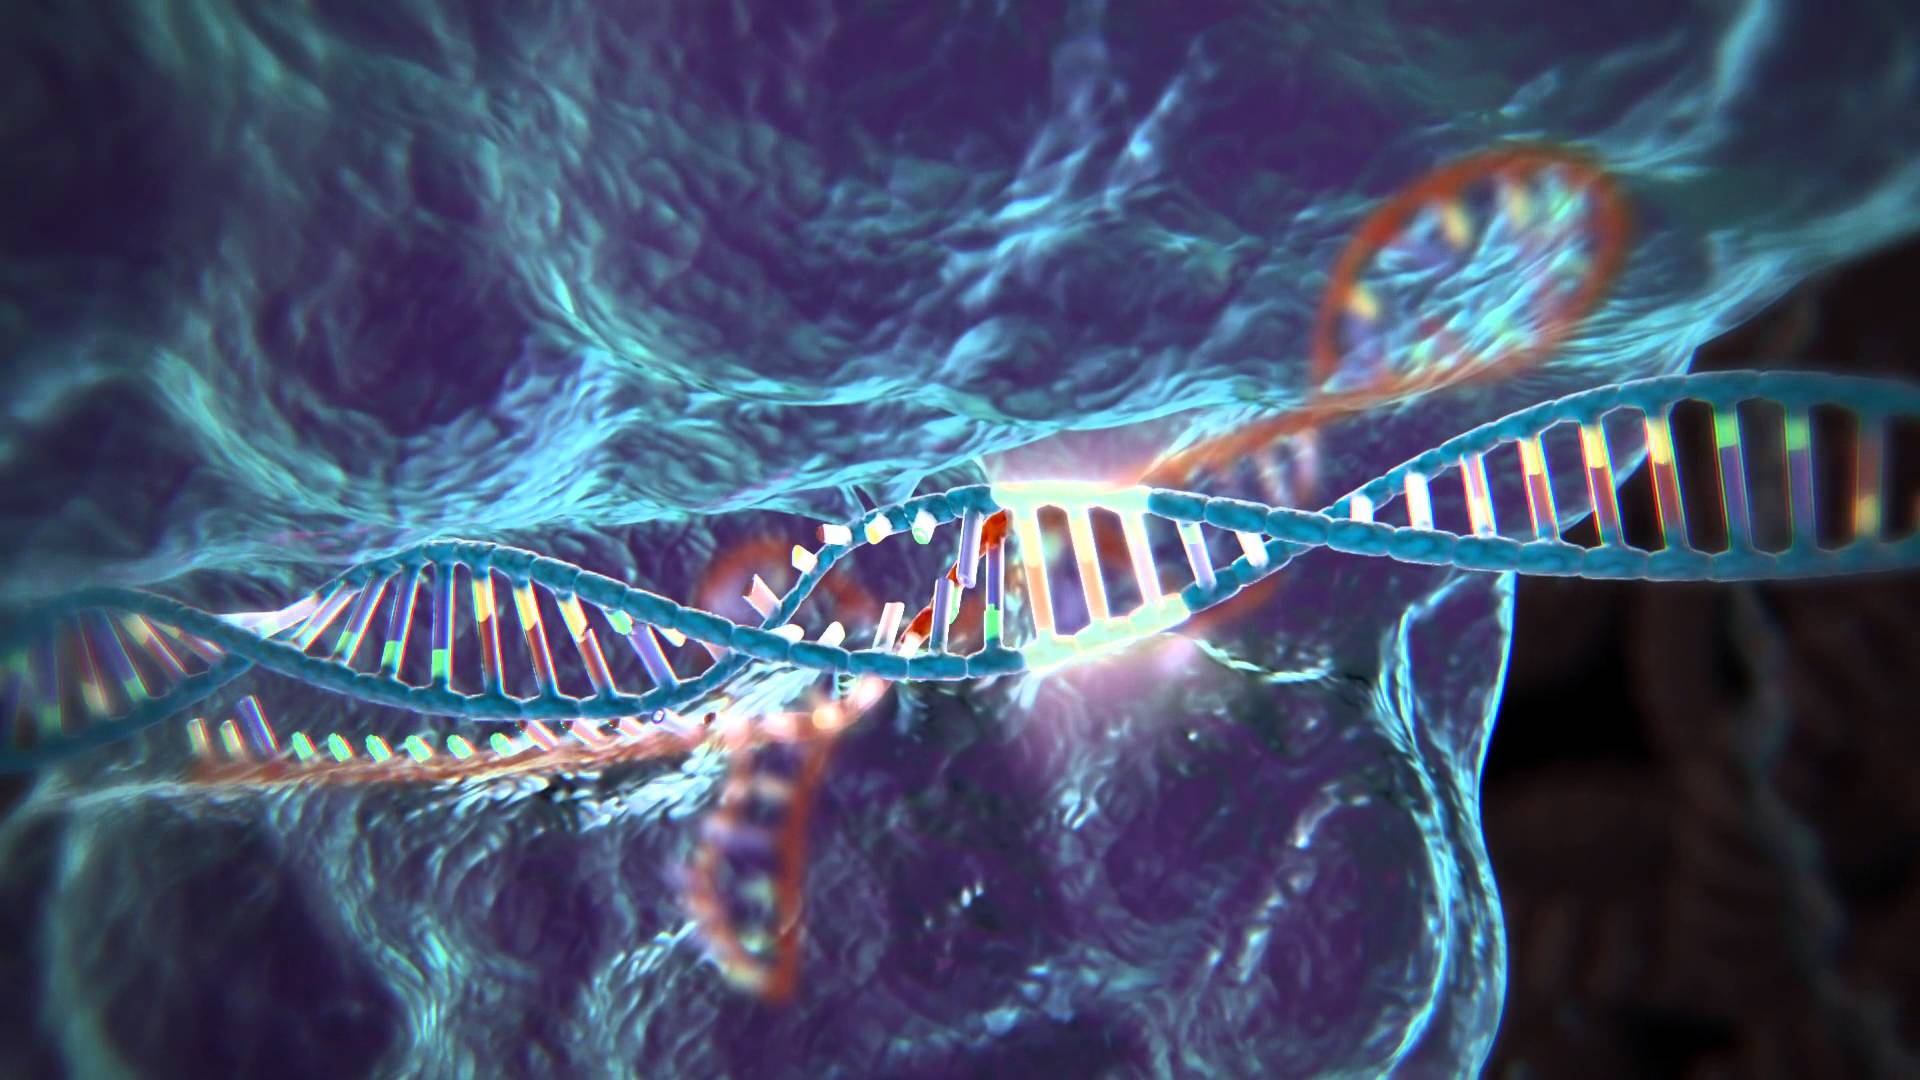 CRISPR – Cutting Edgenetics